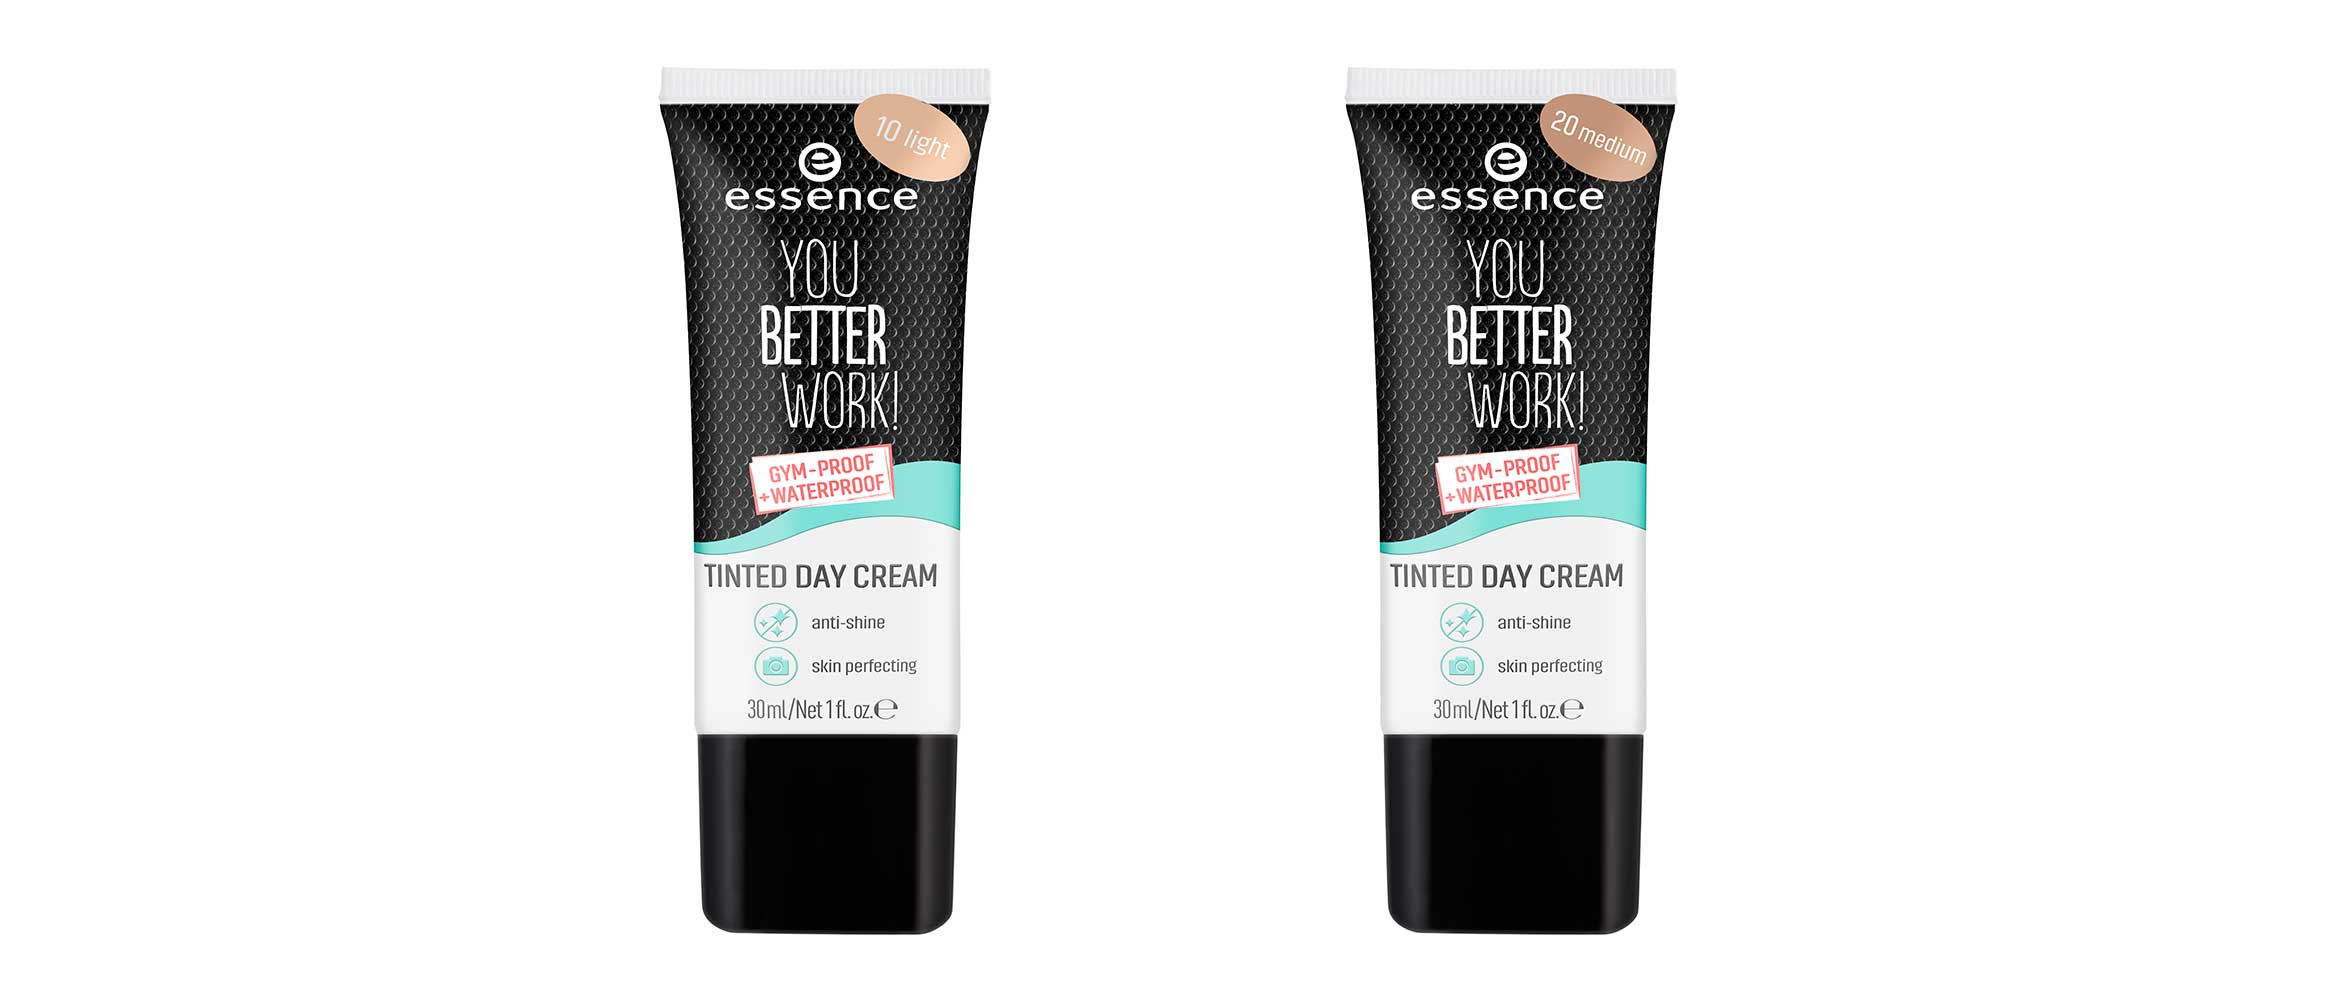 Essence-you-better-work-tinted-day-cream-collectie-2019